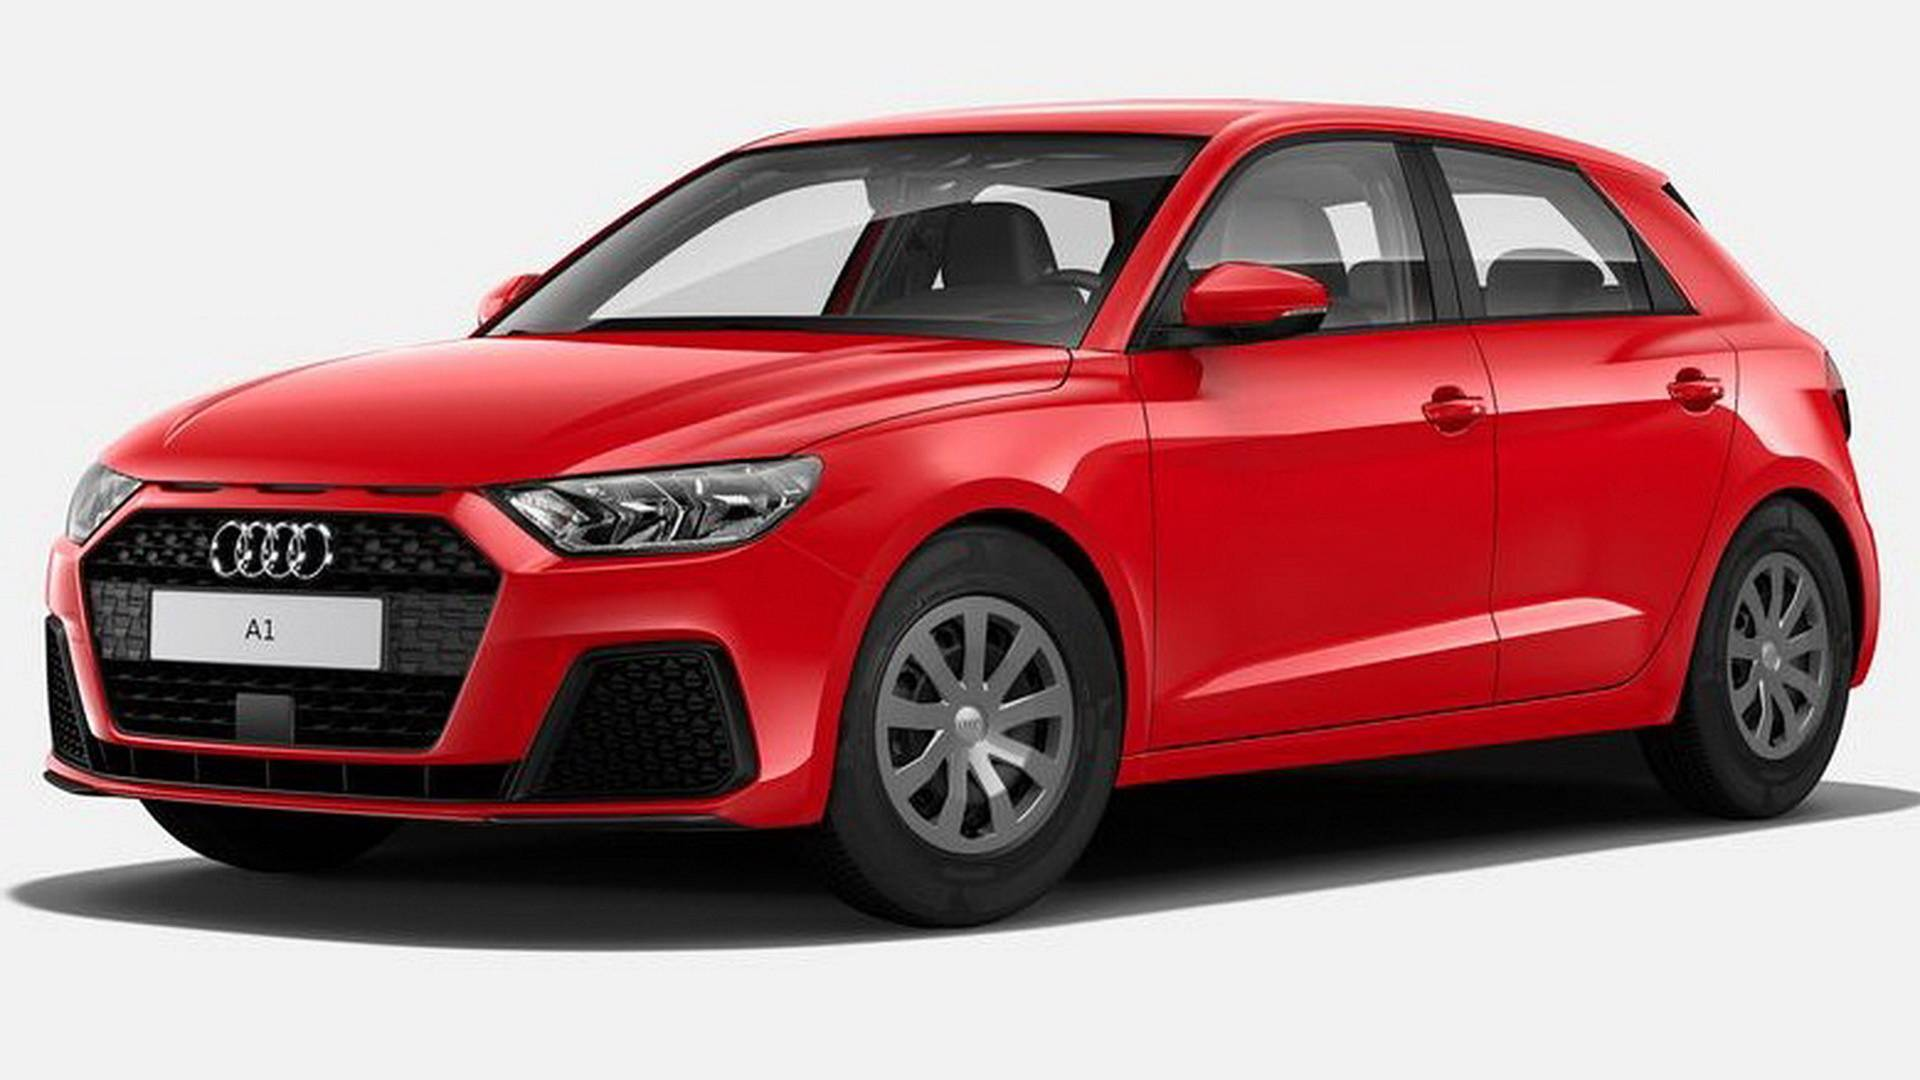 Here S The Most Basic Audi A1 Money Can Buy Hubcaps No Radio